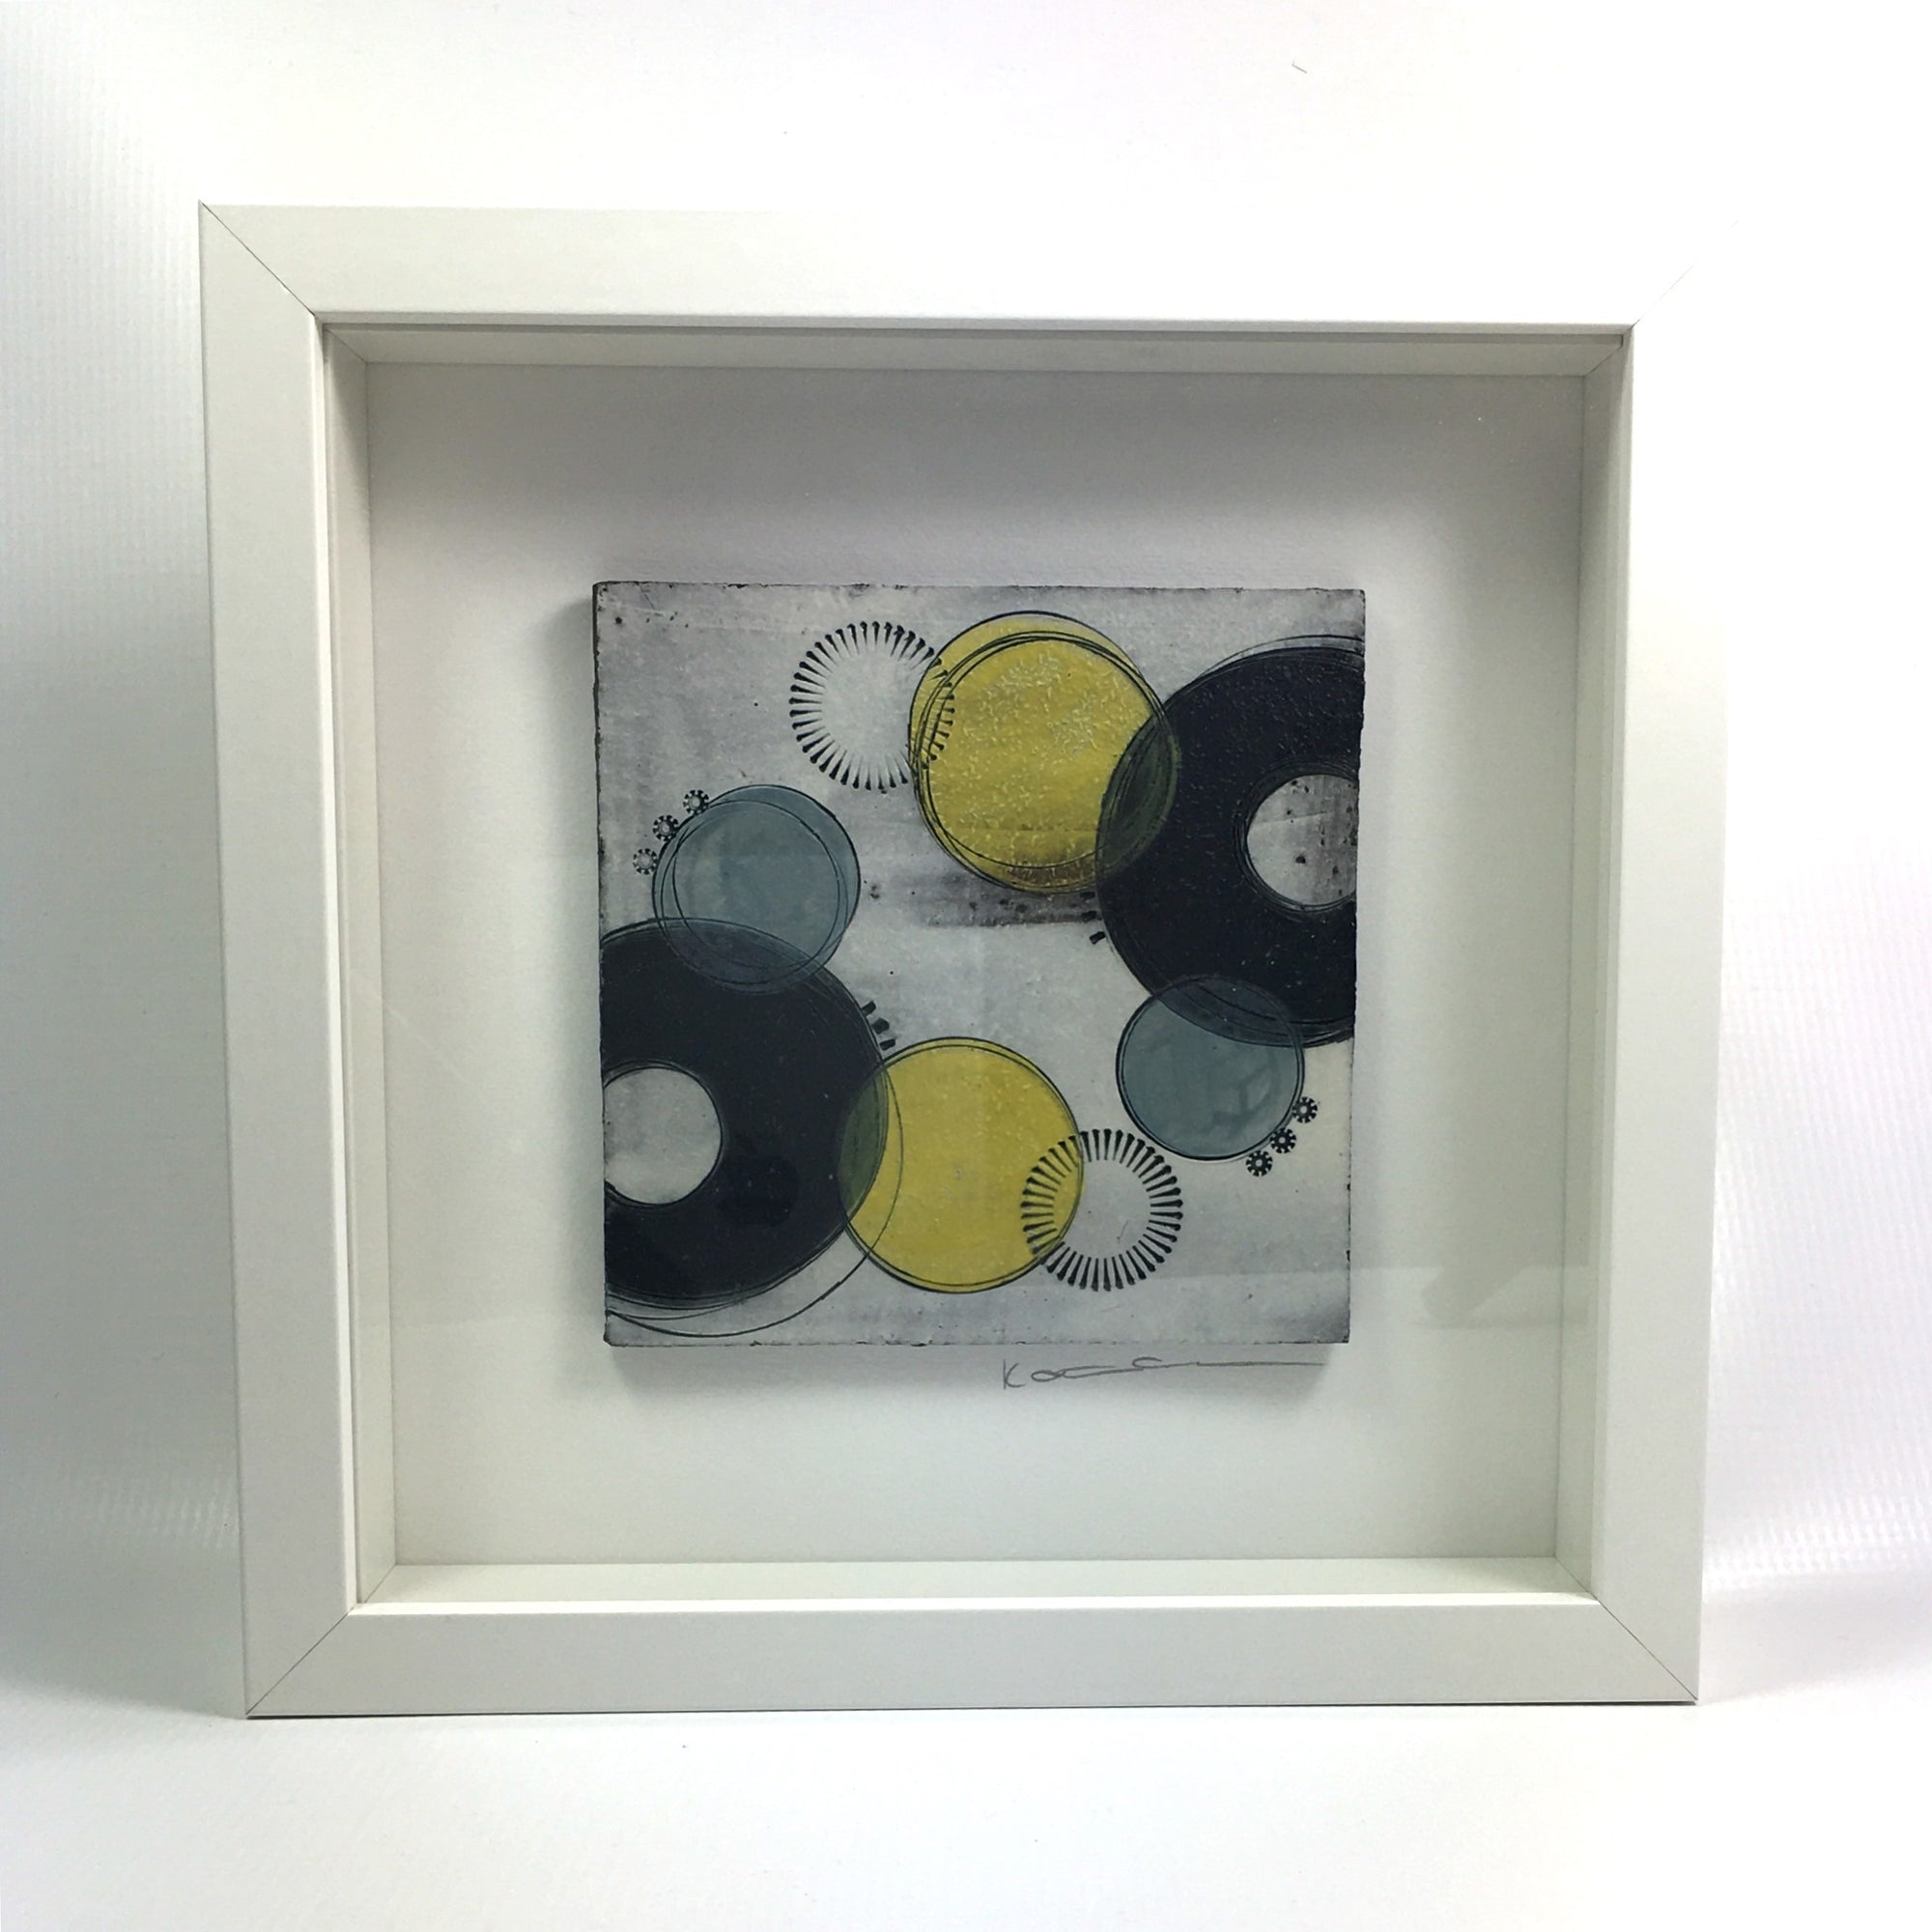 Framed small wall plaque - black crescents and vibrant yellow spots